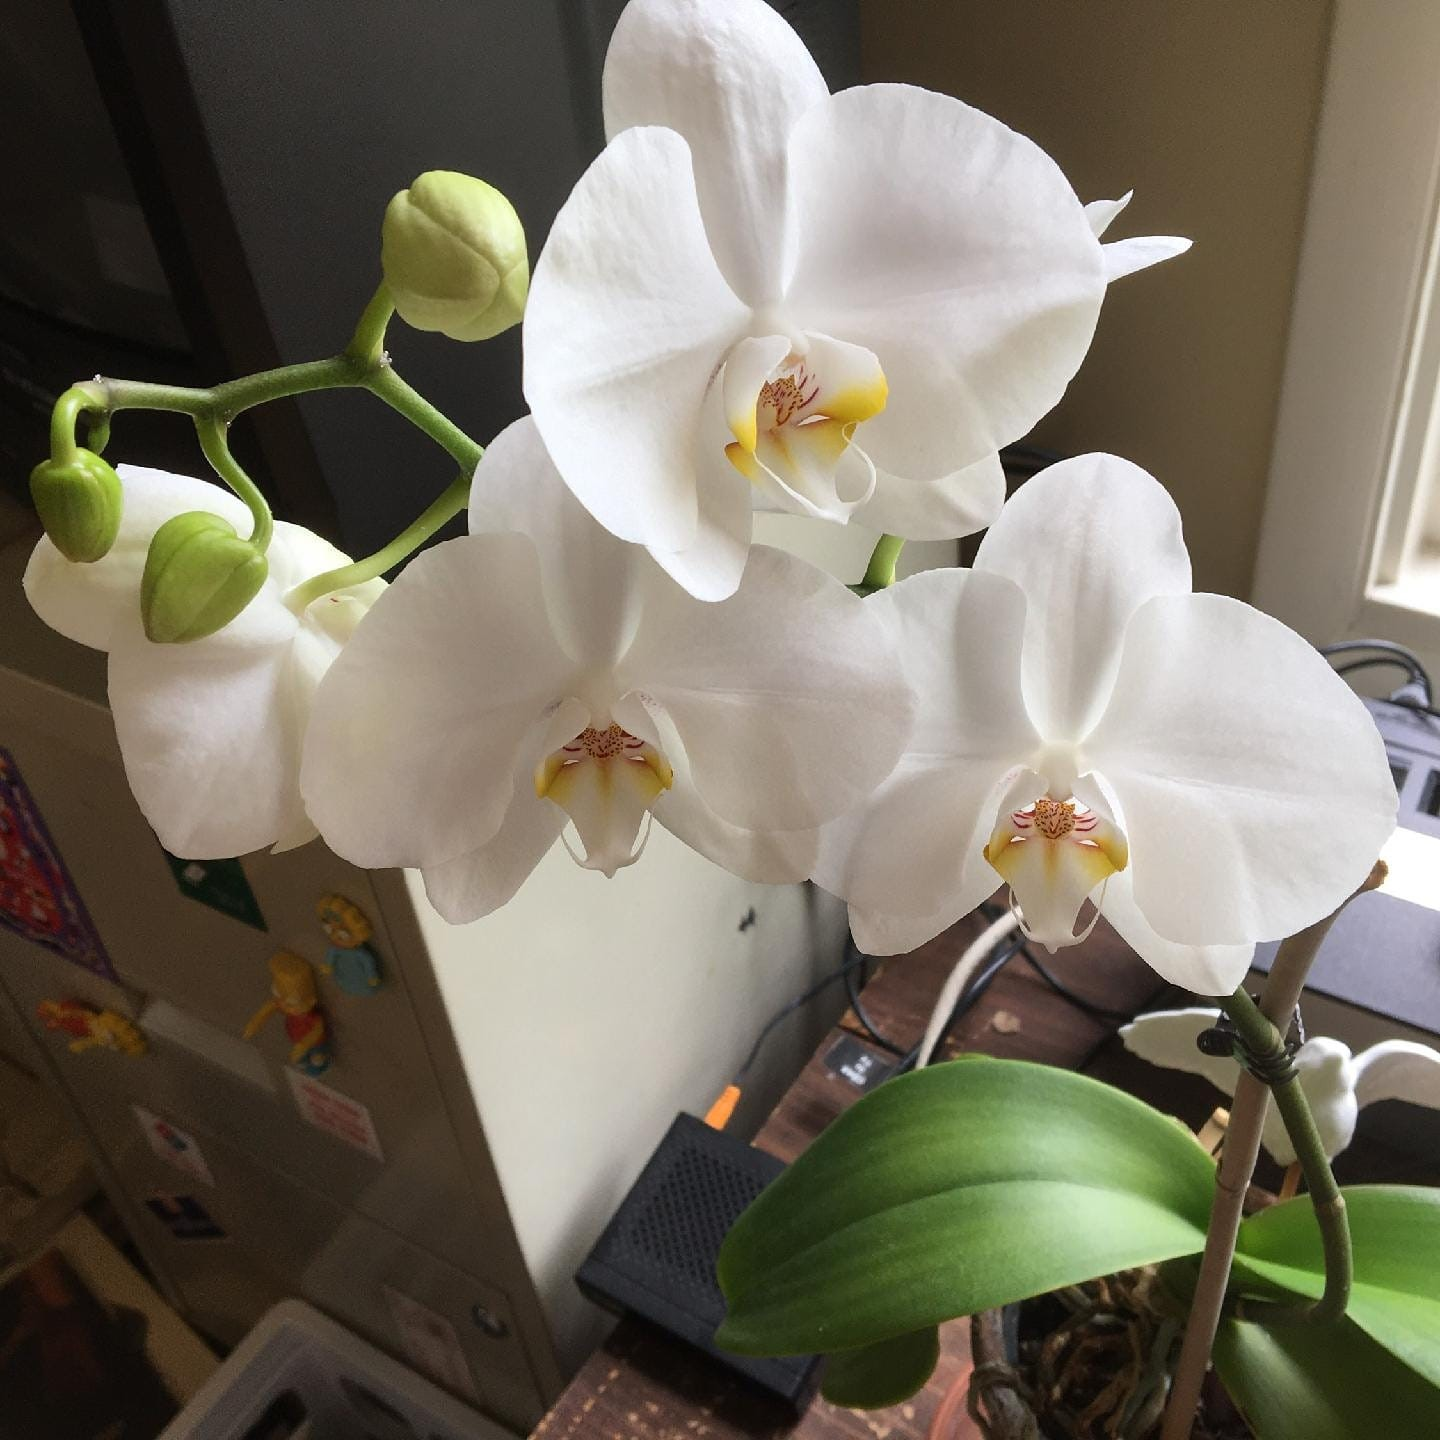 The orchid has come to life!, 5-20.